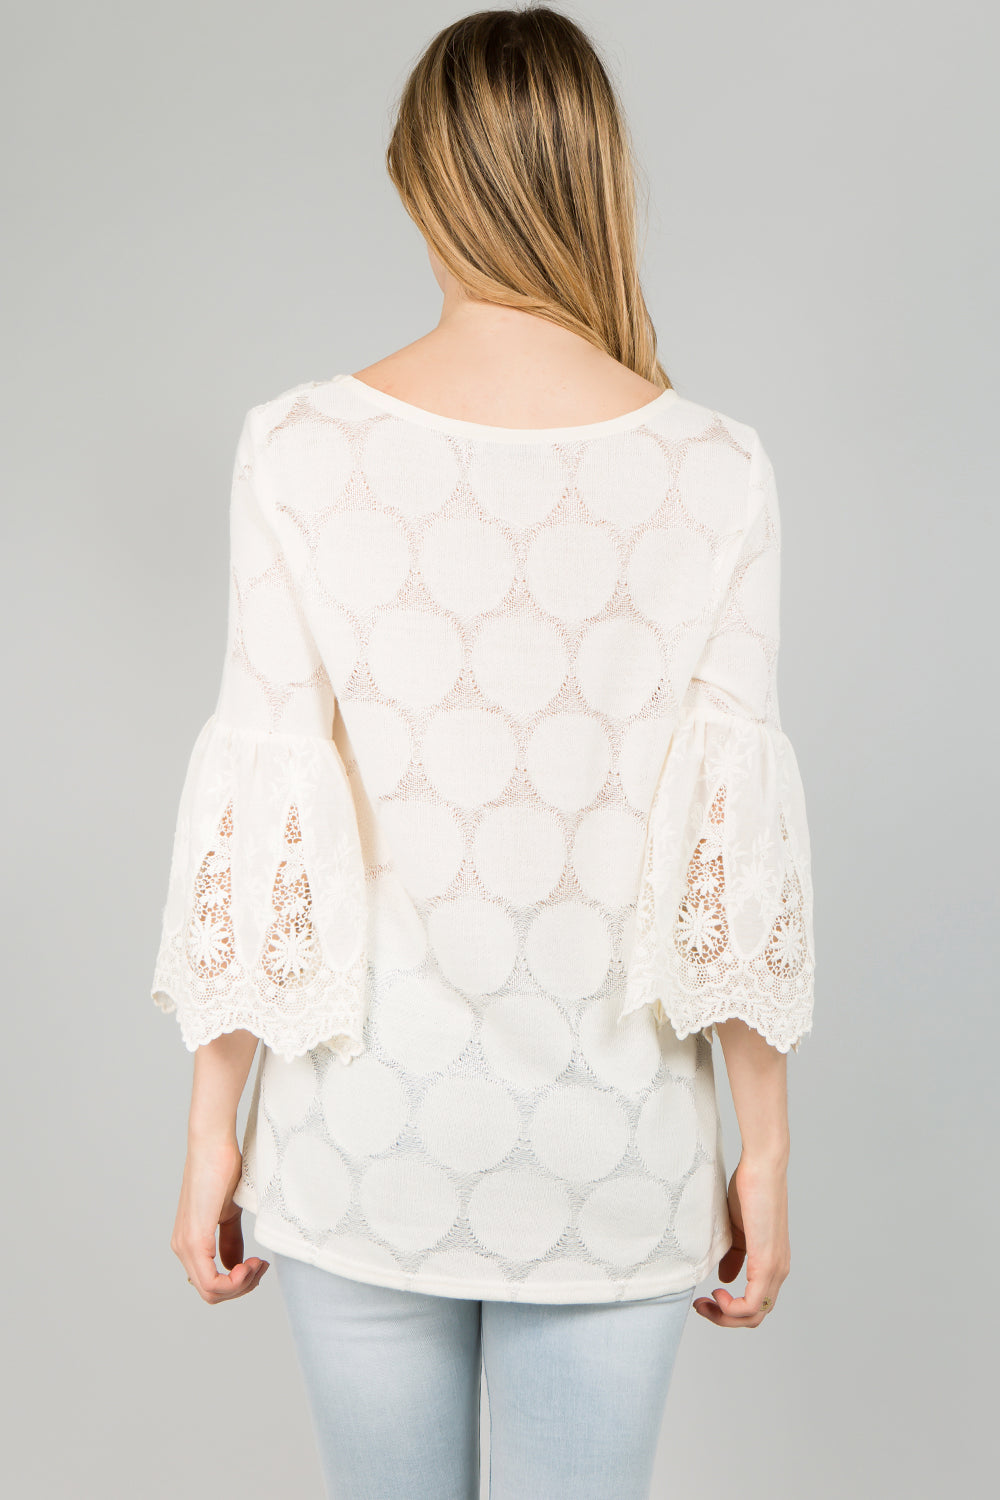 T2340 Lace Trim Bell Sleeve Top